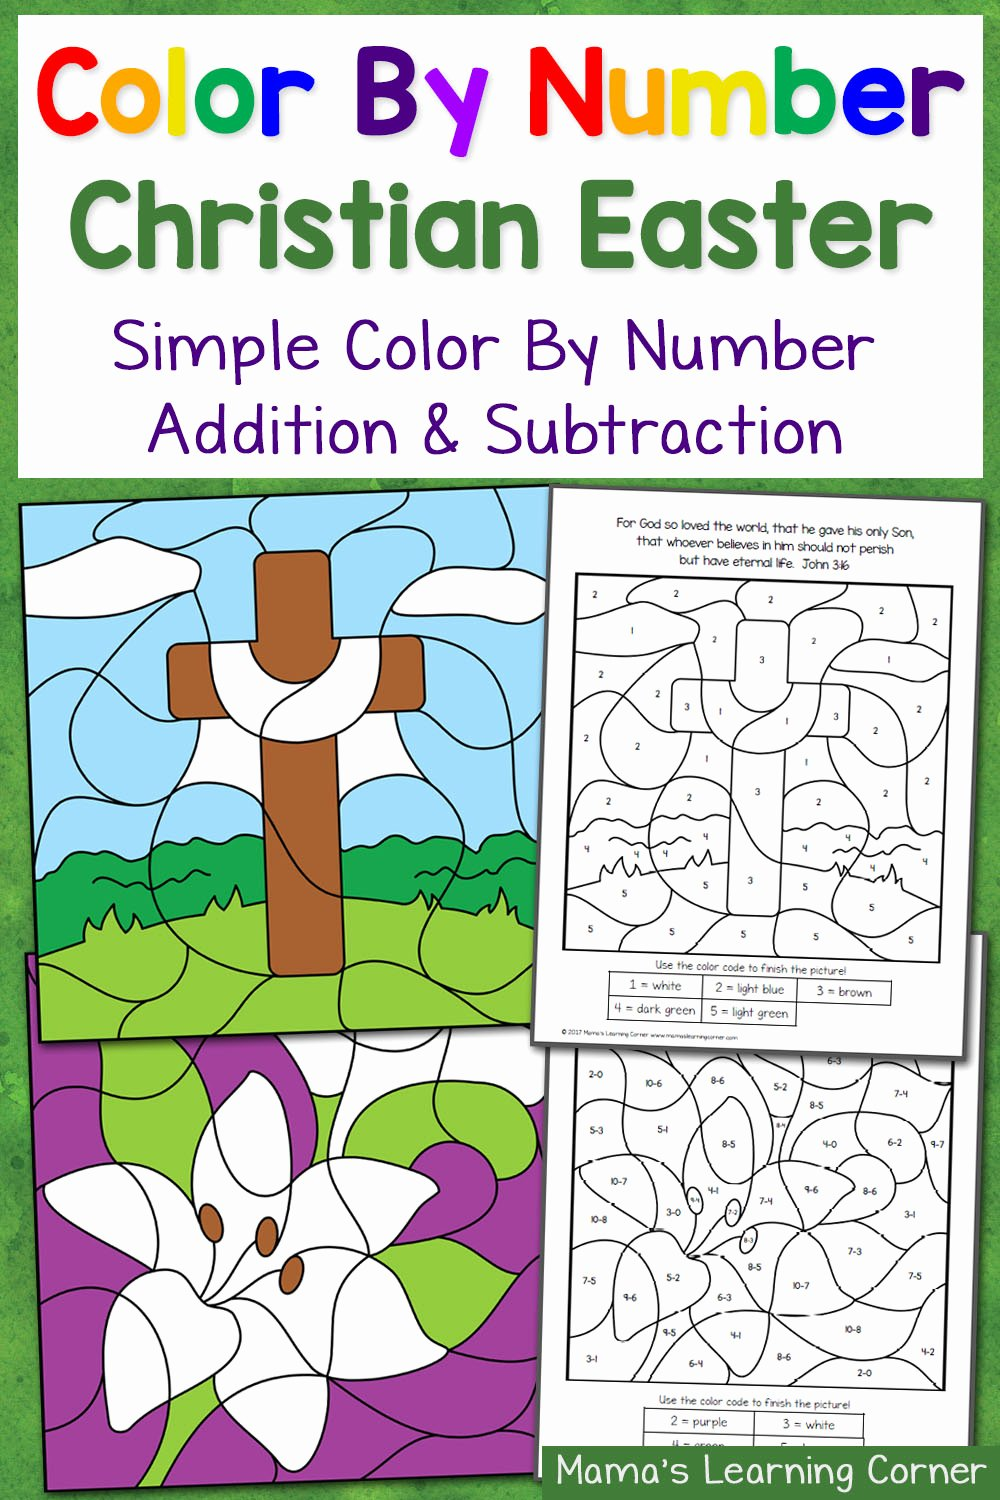 Christian Easter Worksheets for Preschoolers New Christian Easter Color by Number Worksheets Mamas Learning